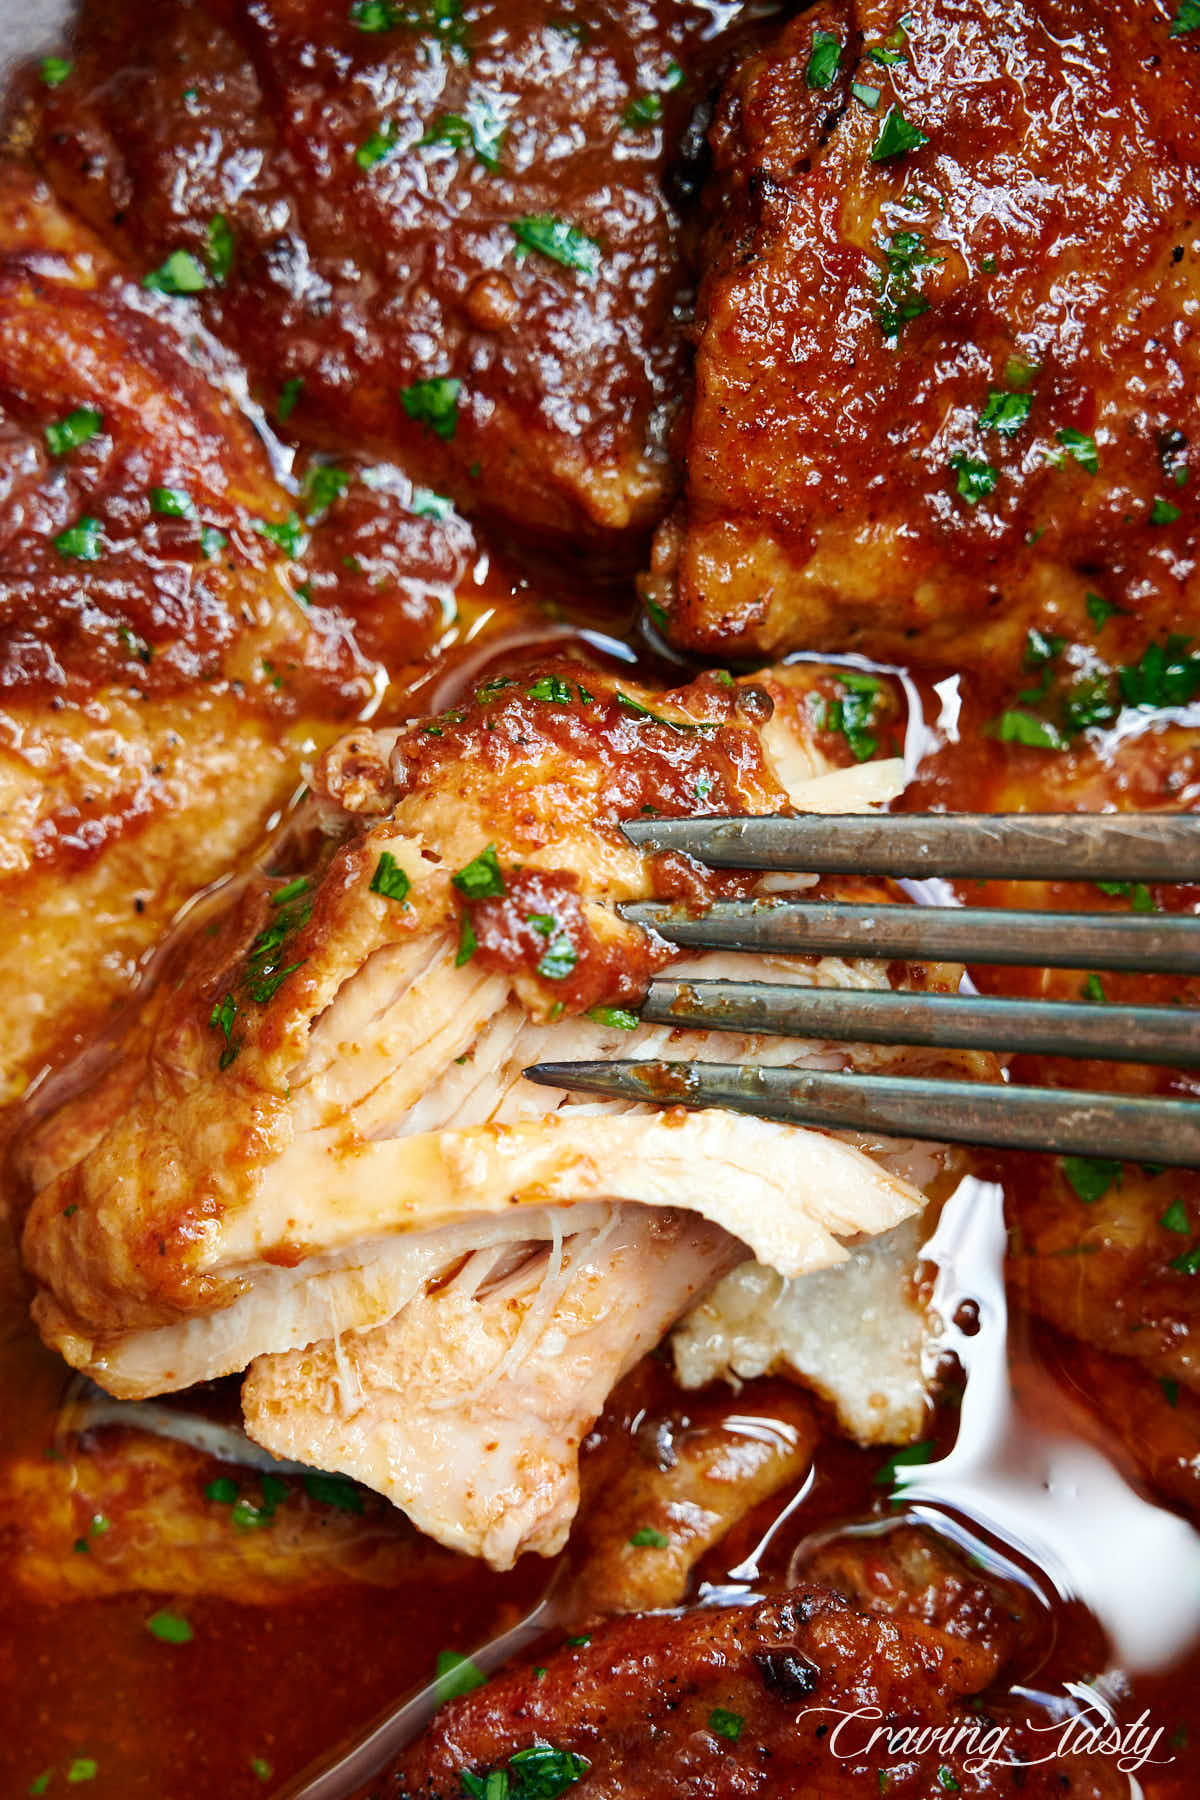 Close up of BBQ chicken inside slow cooker shredded with a fork.